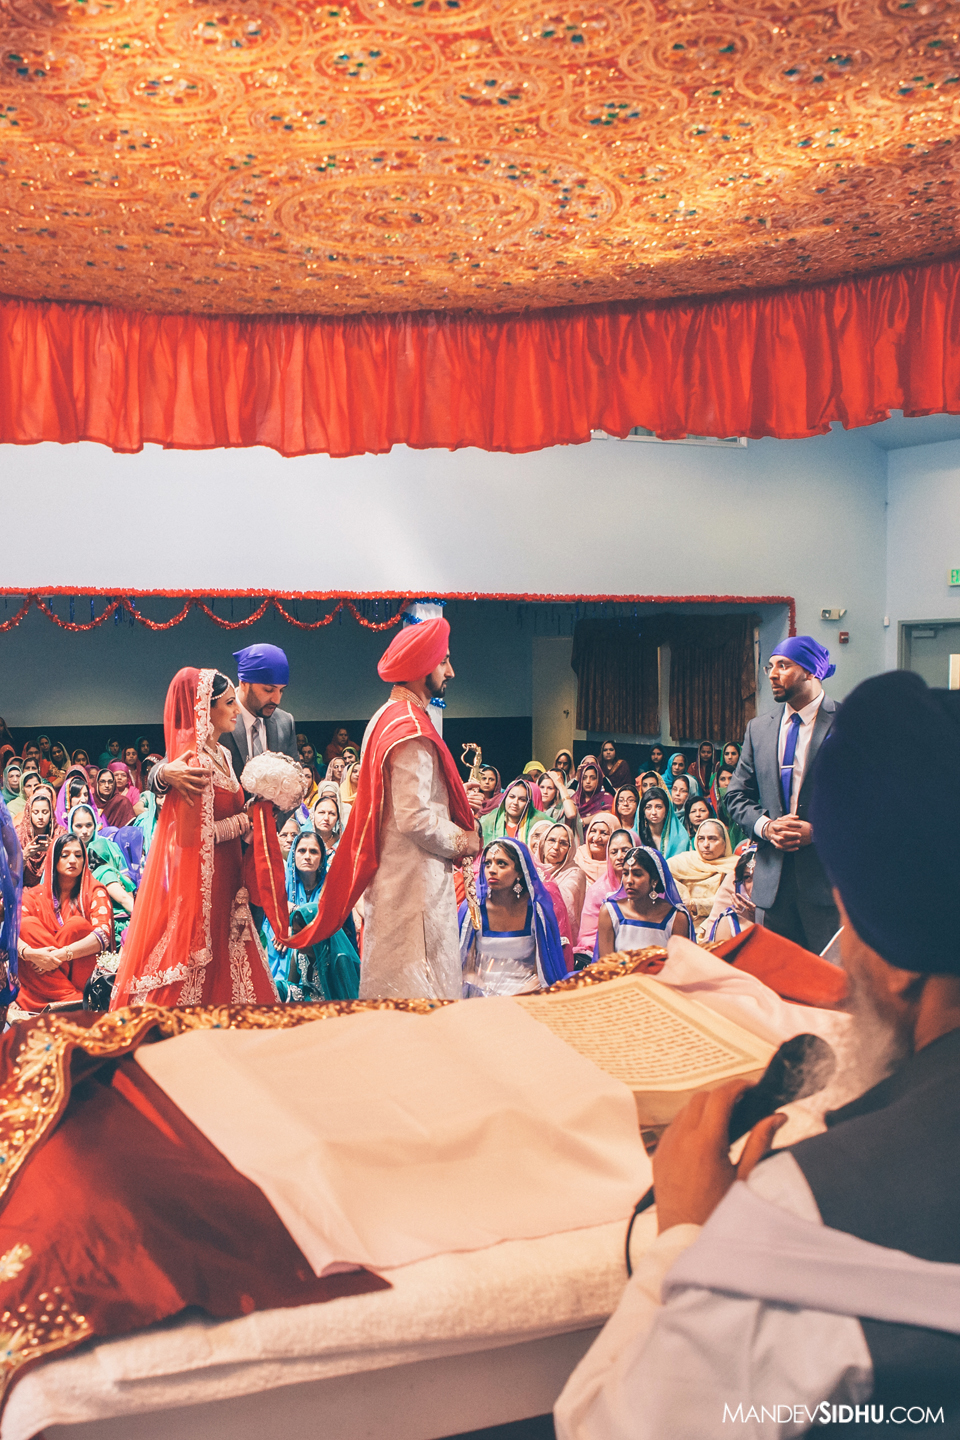 lavaan in gurdwara during sikh wedding